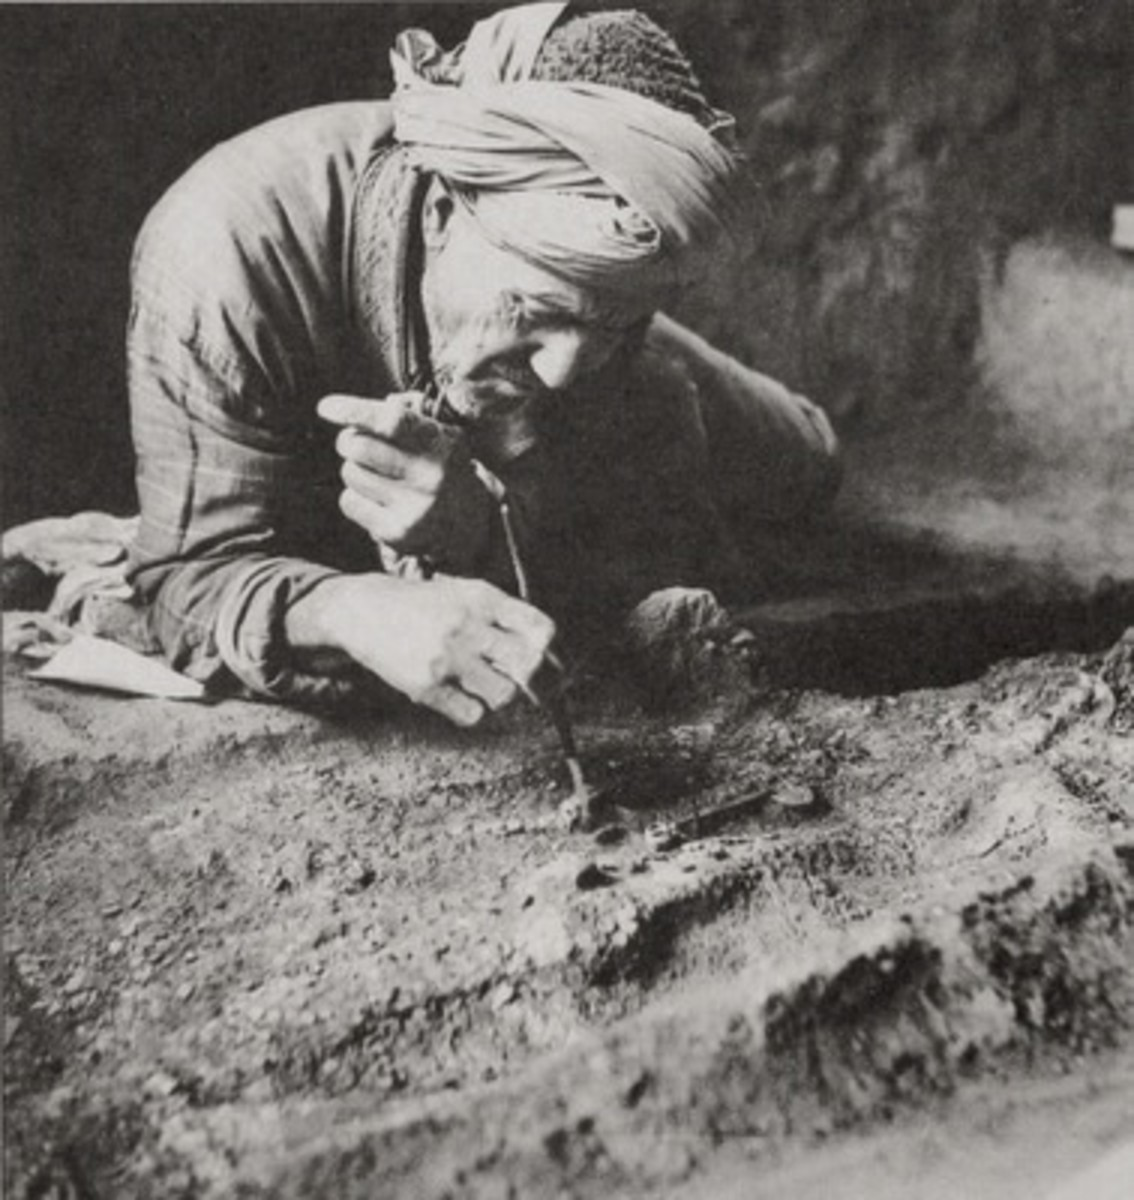 Excavations from Tillya Tepe, Tomb IV, Second quarter of the 1st century AD. An Afghan archaeologist carefully uncovers the golden dagger from Tomb IV, 1978 - © Viktor Sarianidi, National Museum of Afghanistan / Musée Guimet